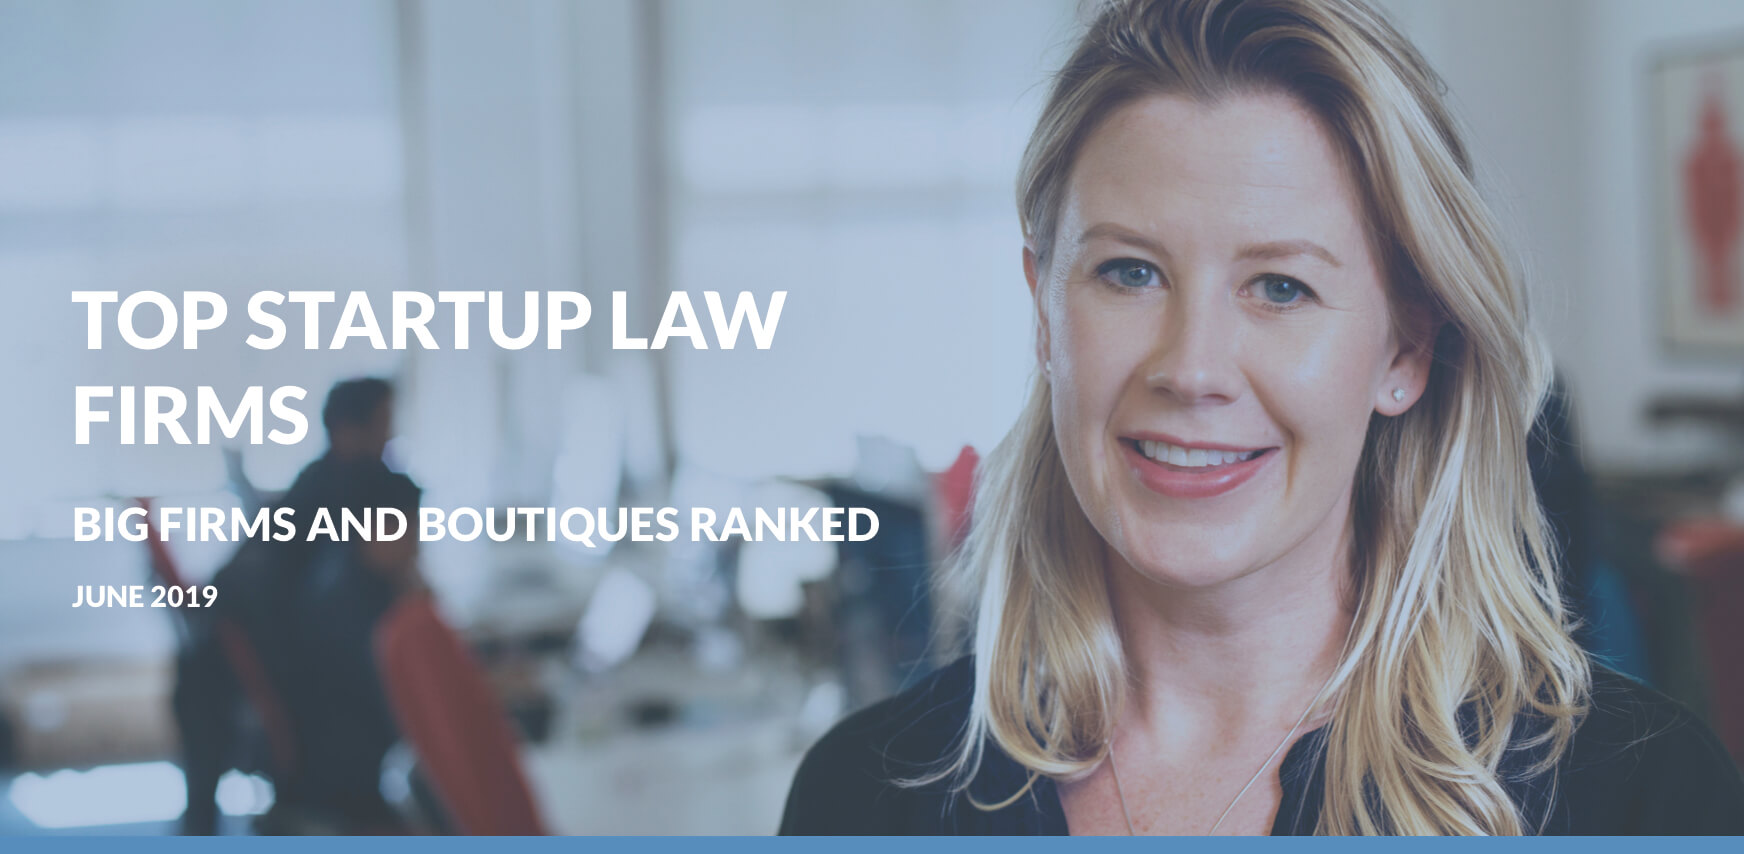 Top 5 and Top Boutique Startup Law Firms